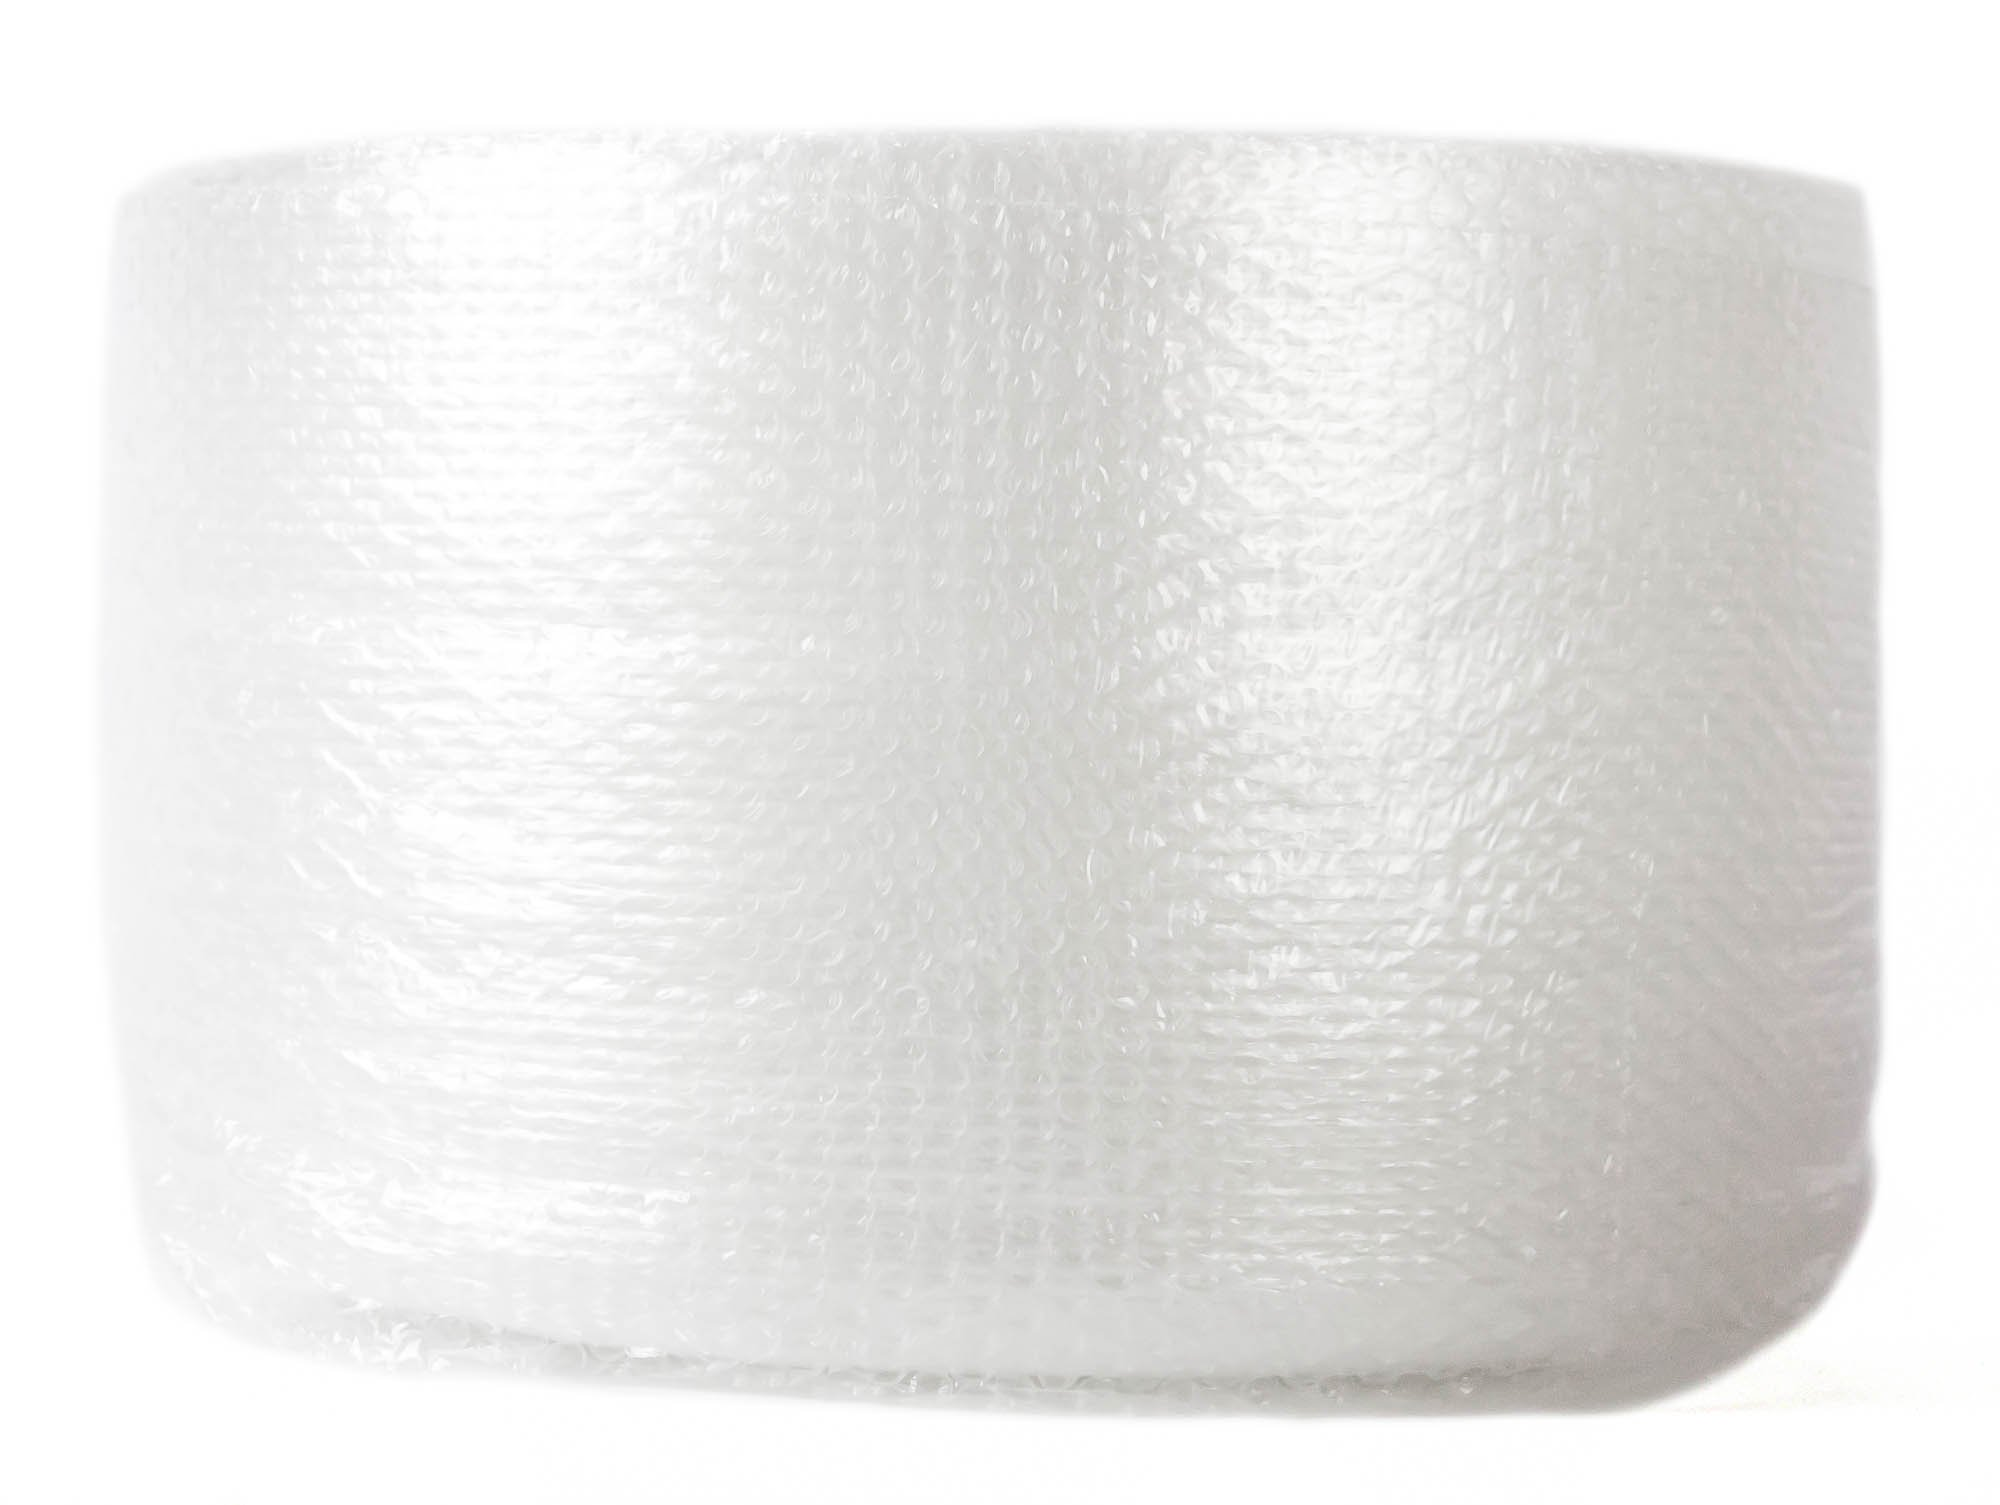 Small 3/16 inch Bubble Cushioning Wrap Slit 12 by 12 Perf 525 Foot Roll Lightweight Protective Packaging Material in Rolls/Perforated Sheets for Moving, Shipping, Padding and Packaging by B2Bboxes (Image #3)